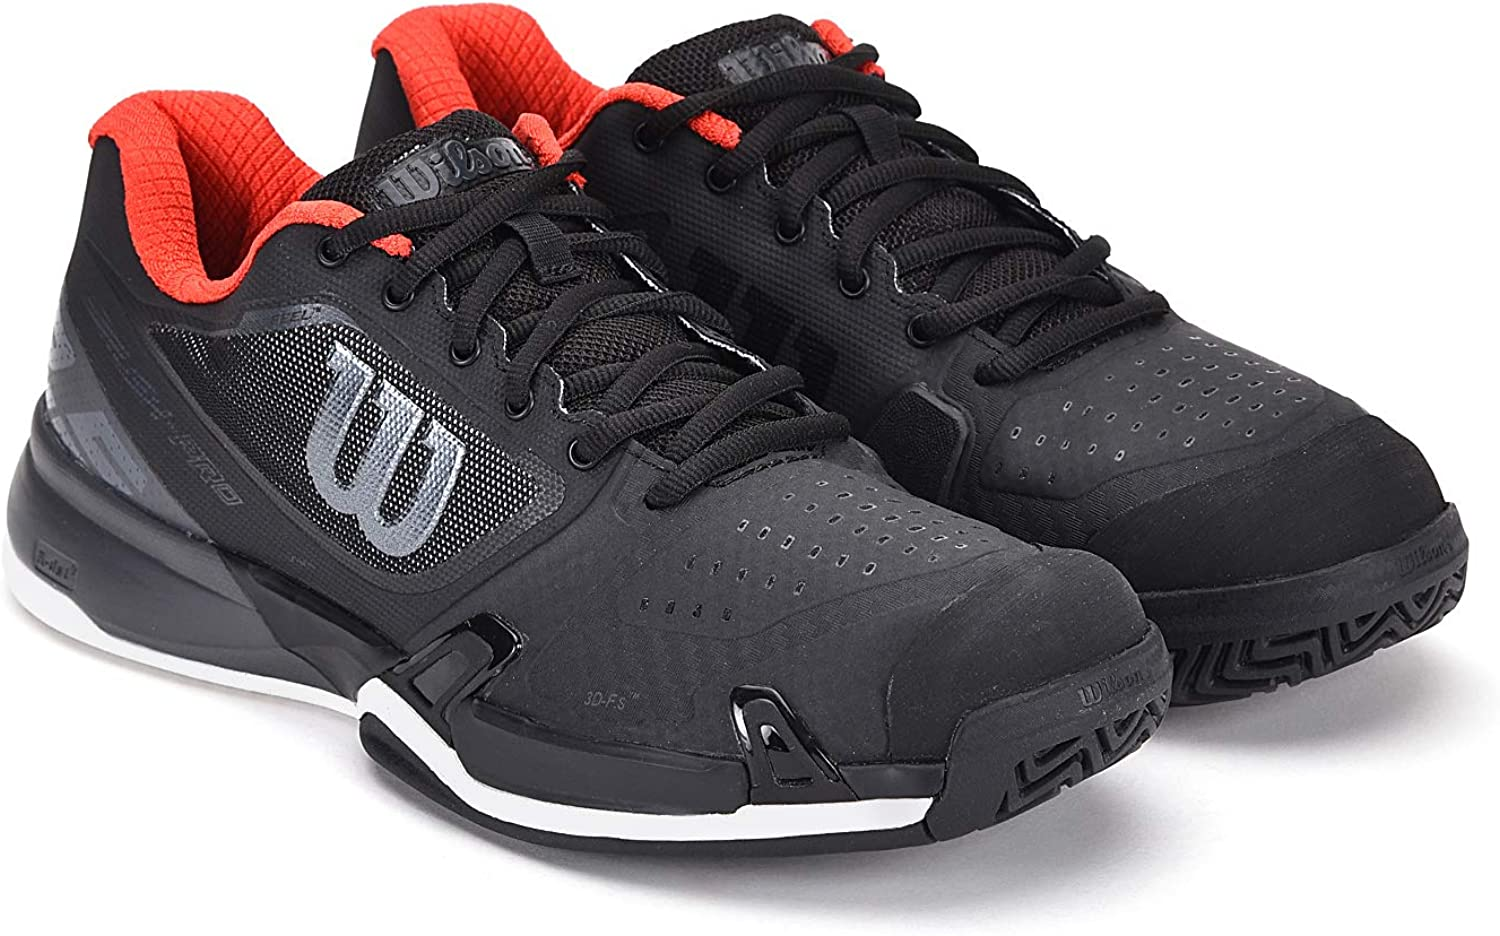 WILSON Men`s 2019 Rush Pro 2.5 Tennis Shoes Black and Red